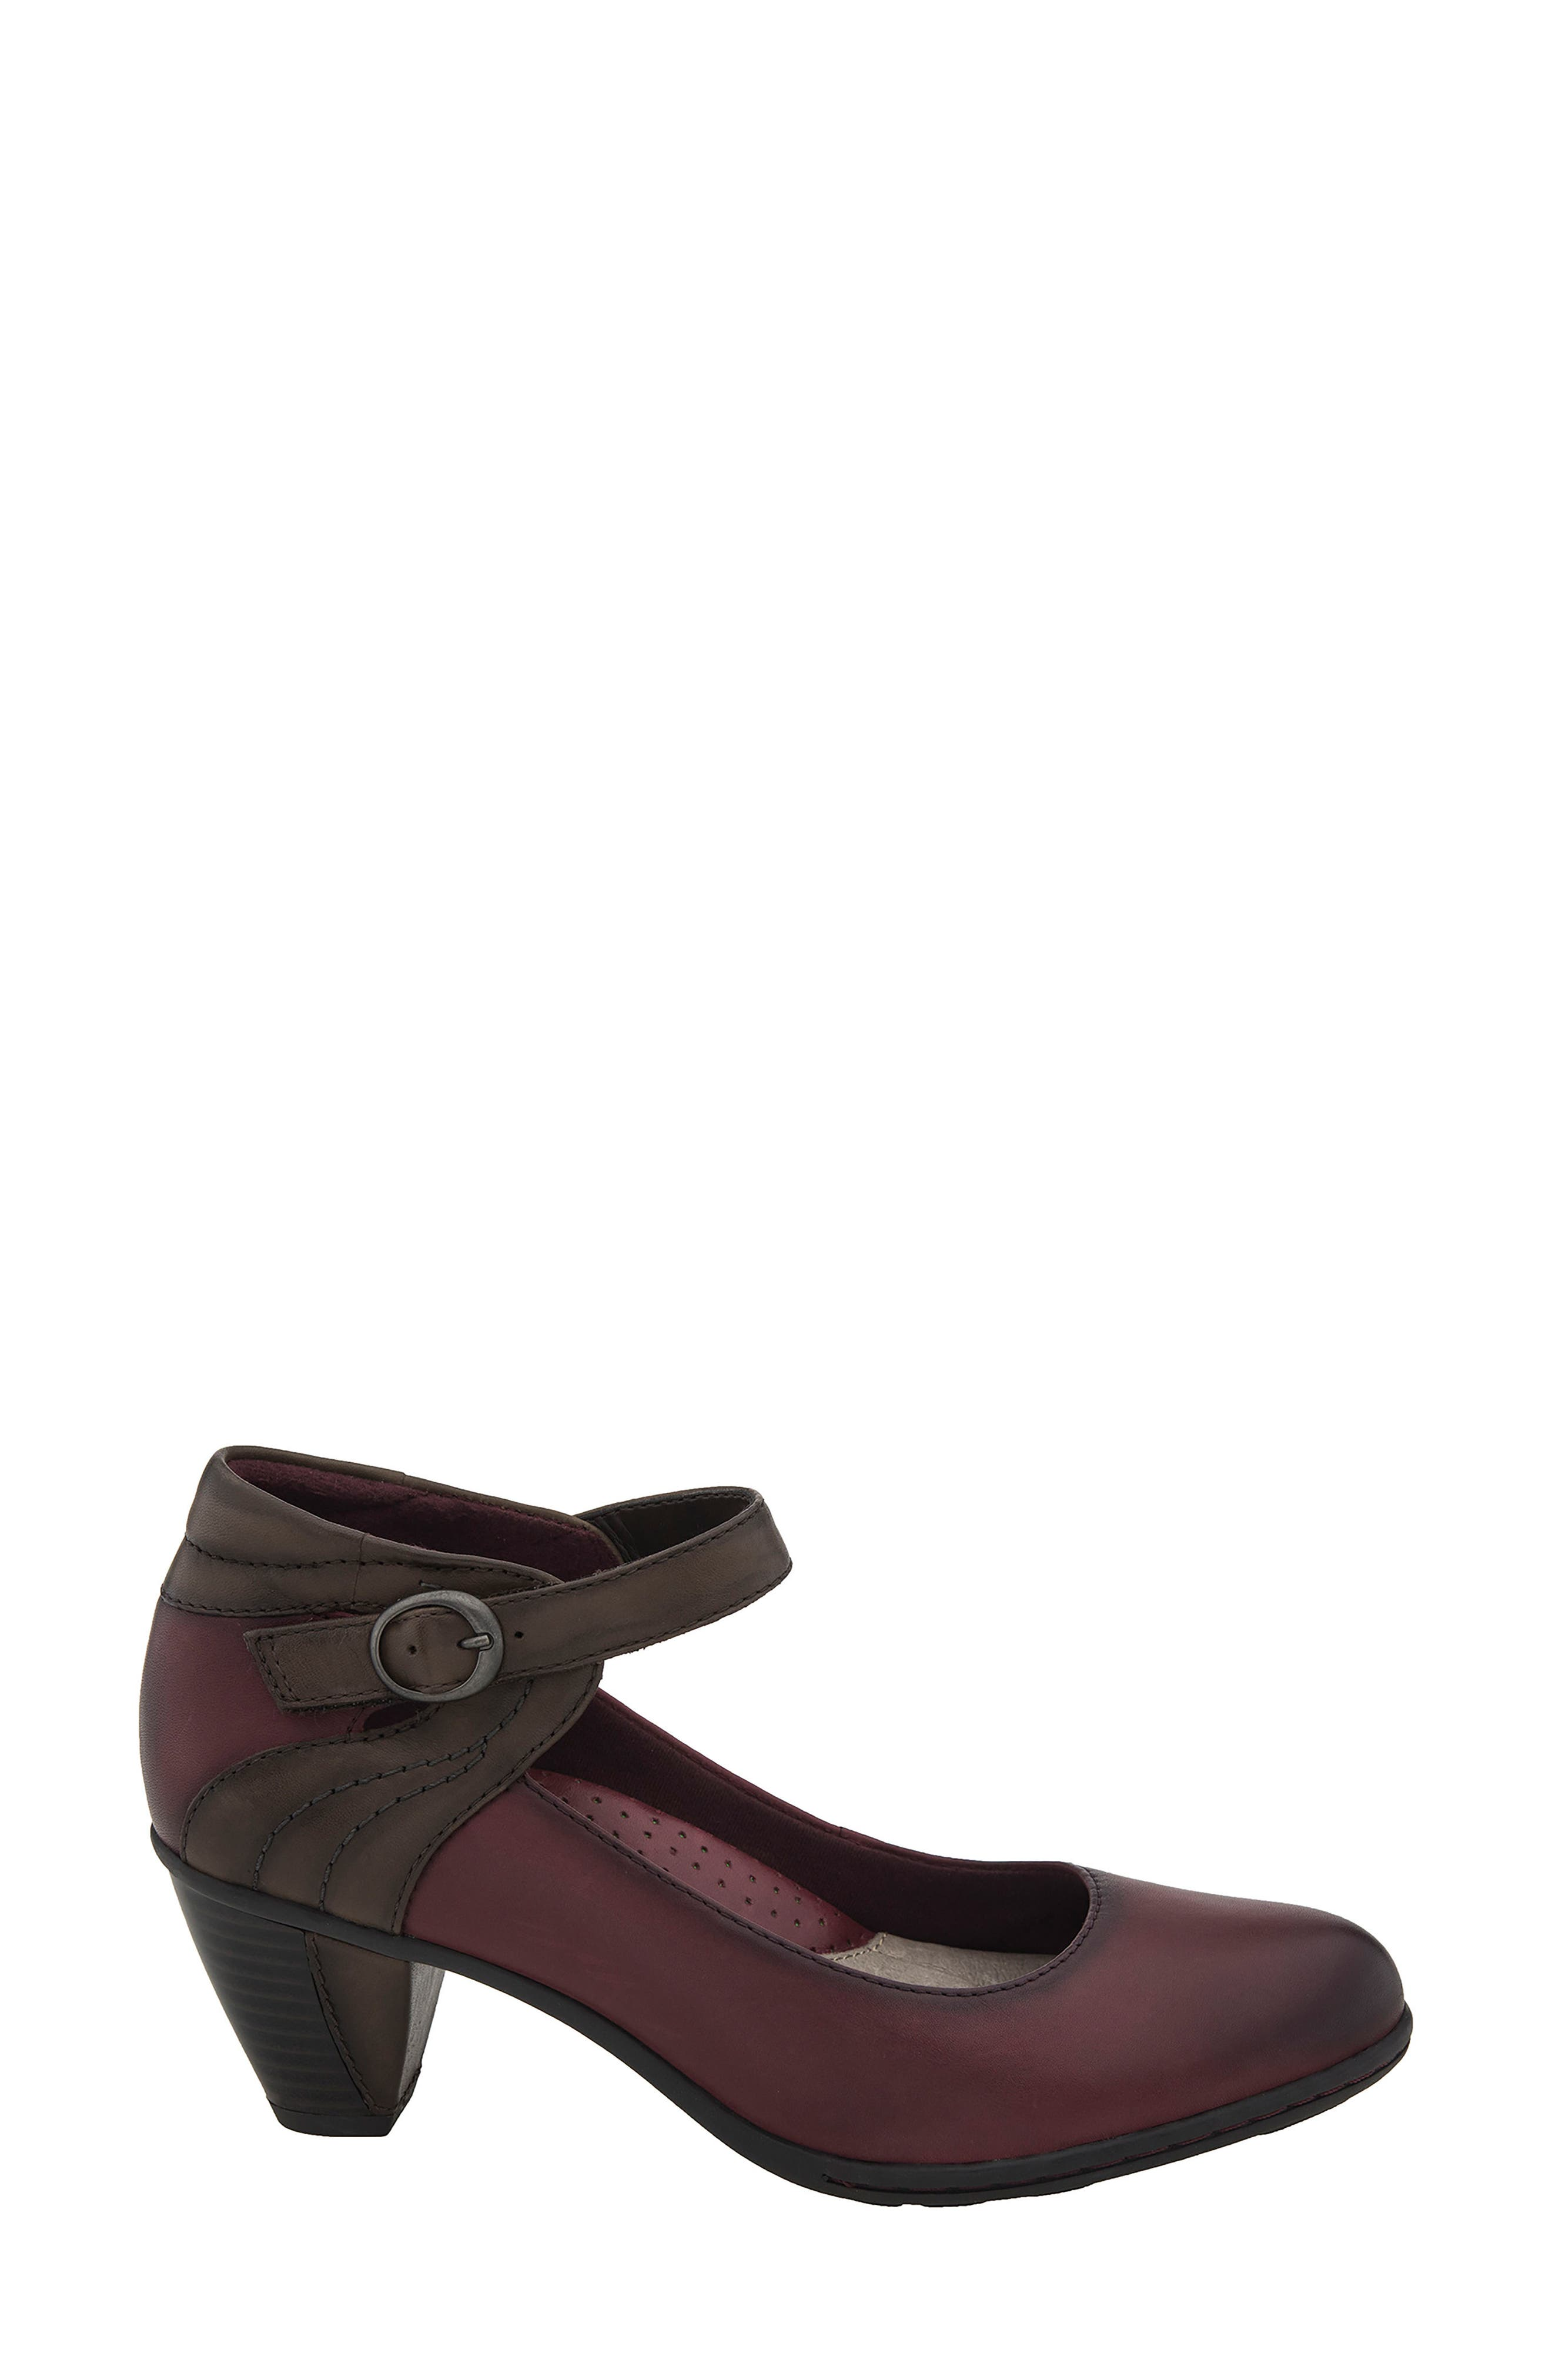 Alternate Image 3  - Earth® Garnet Ankle Strap Pump (Women)